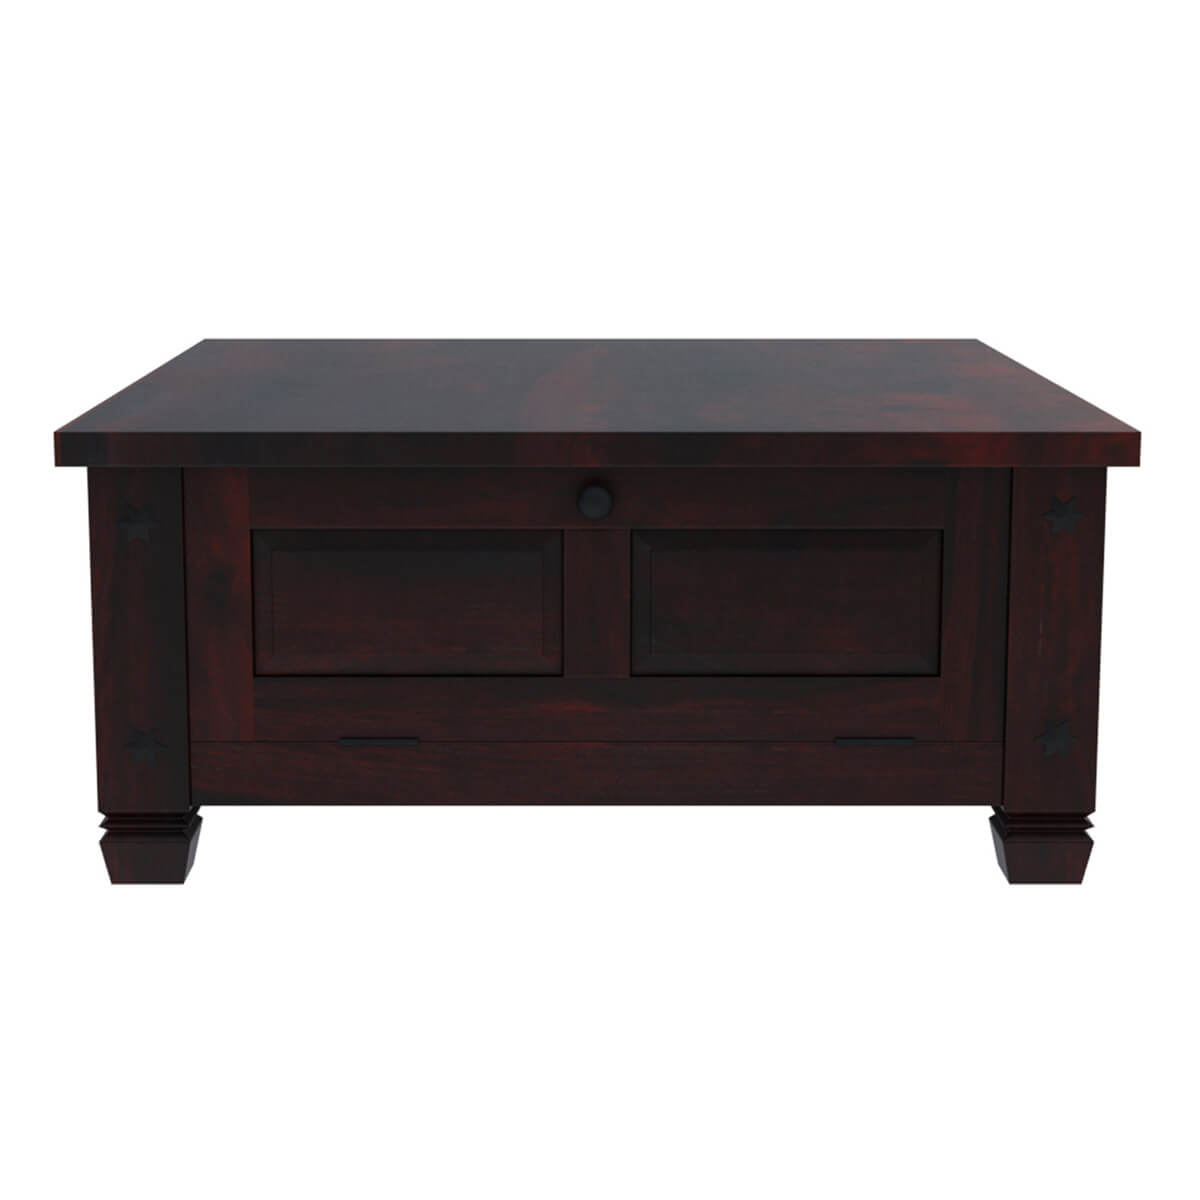 Russet Solid Wood 4 Doors Square Rustic Coffee Table With